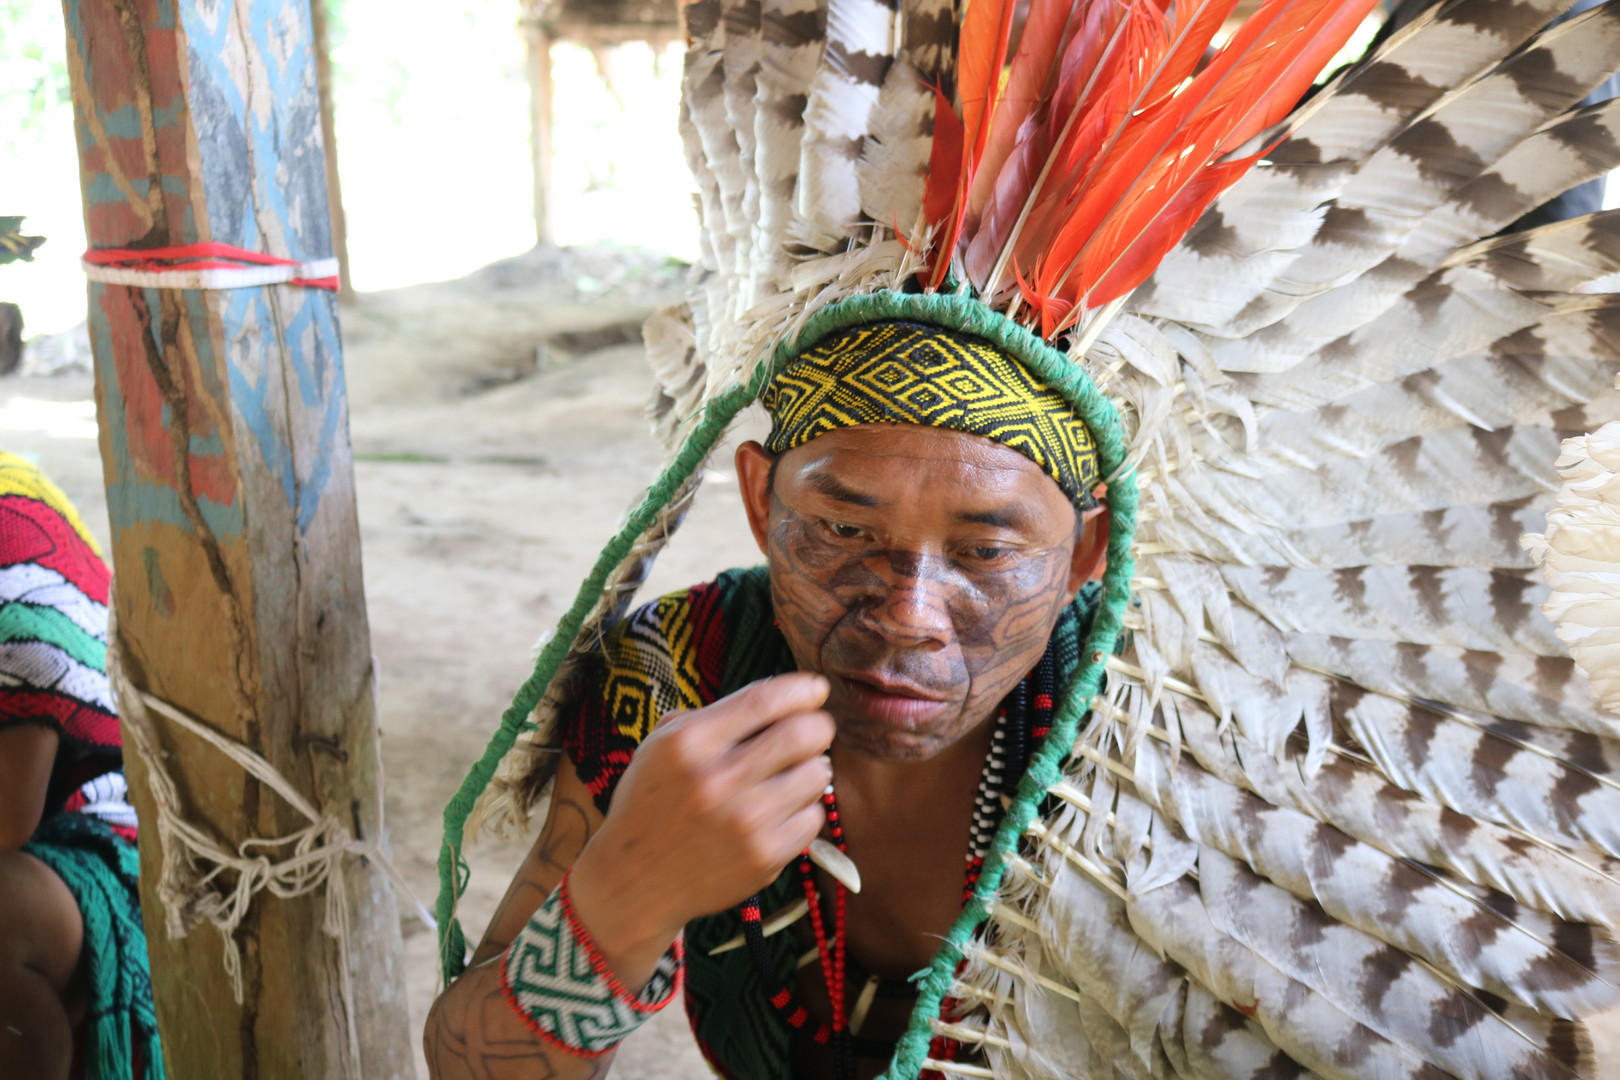 Cacique of the indigenous people Huni Kuin